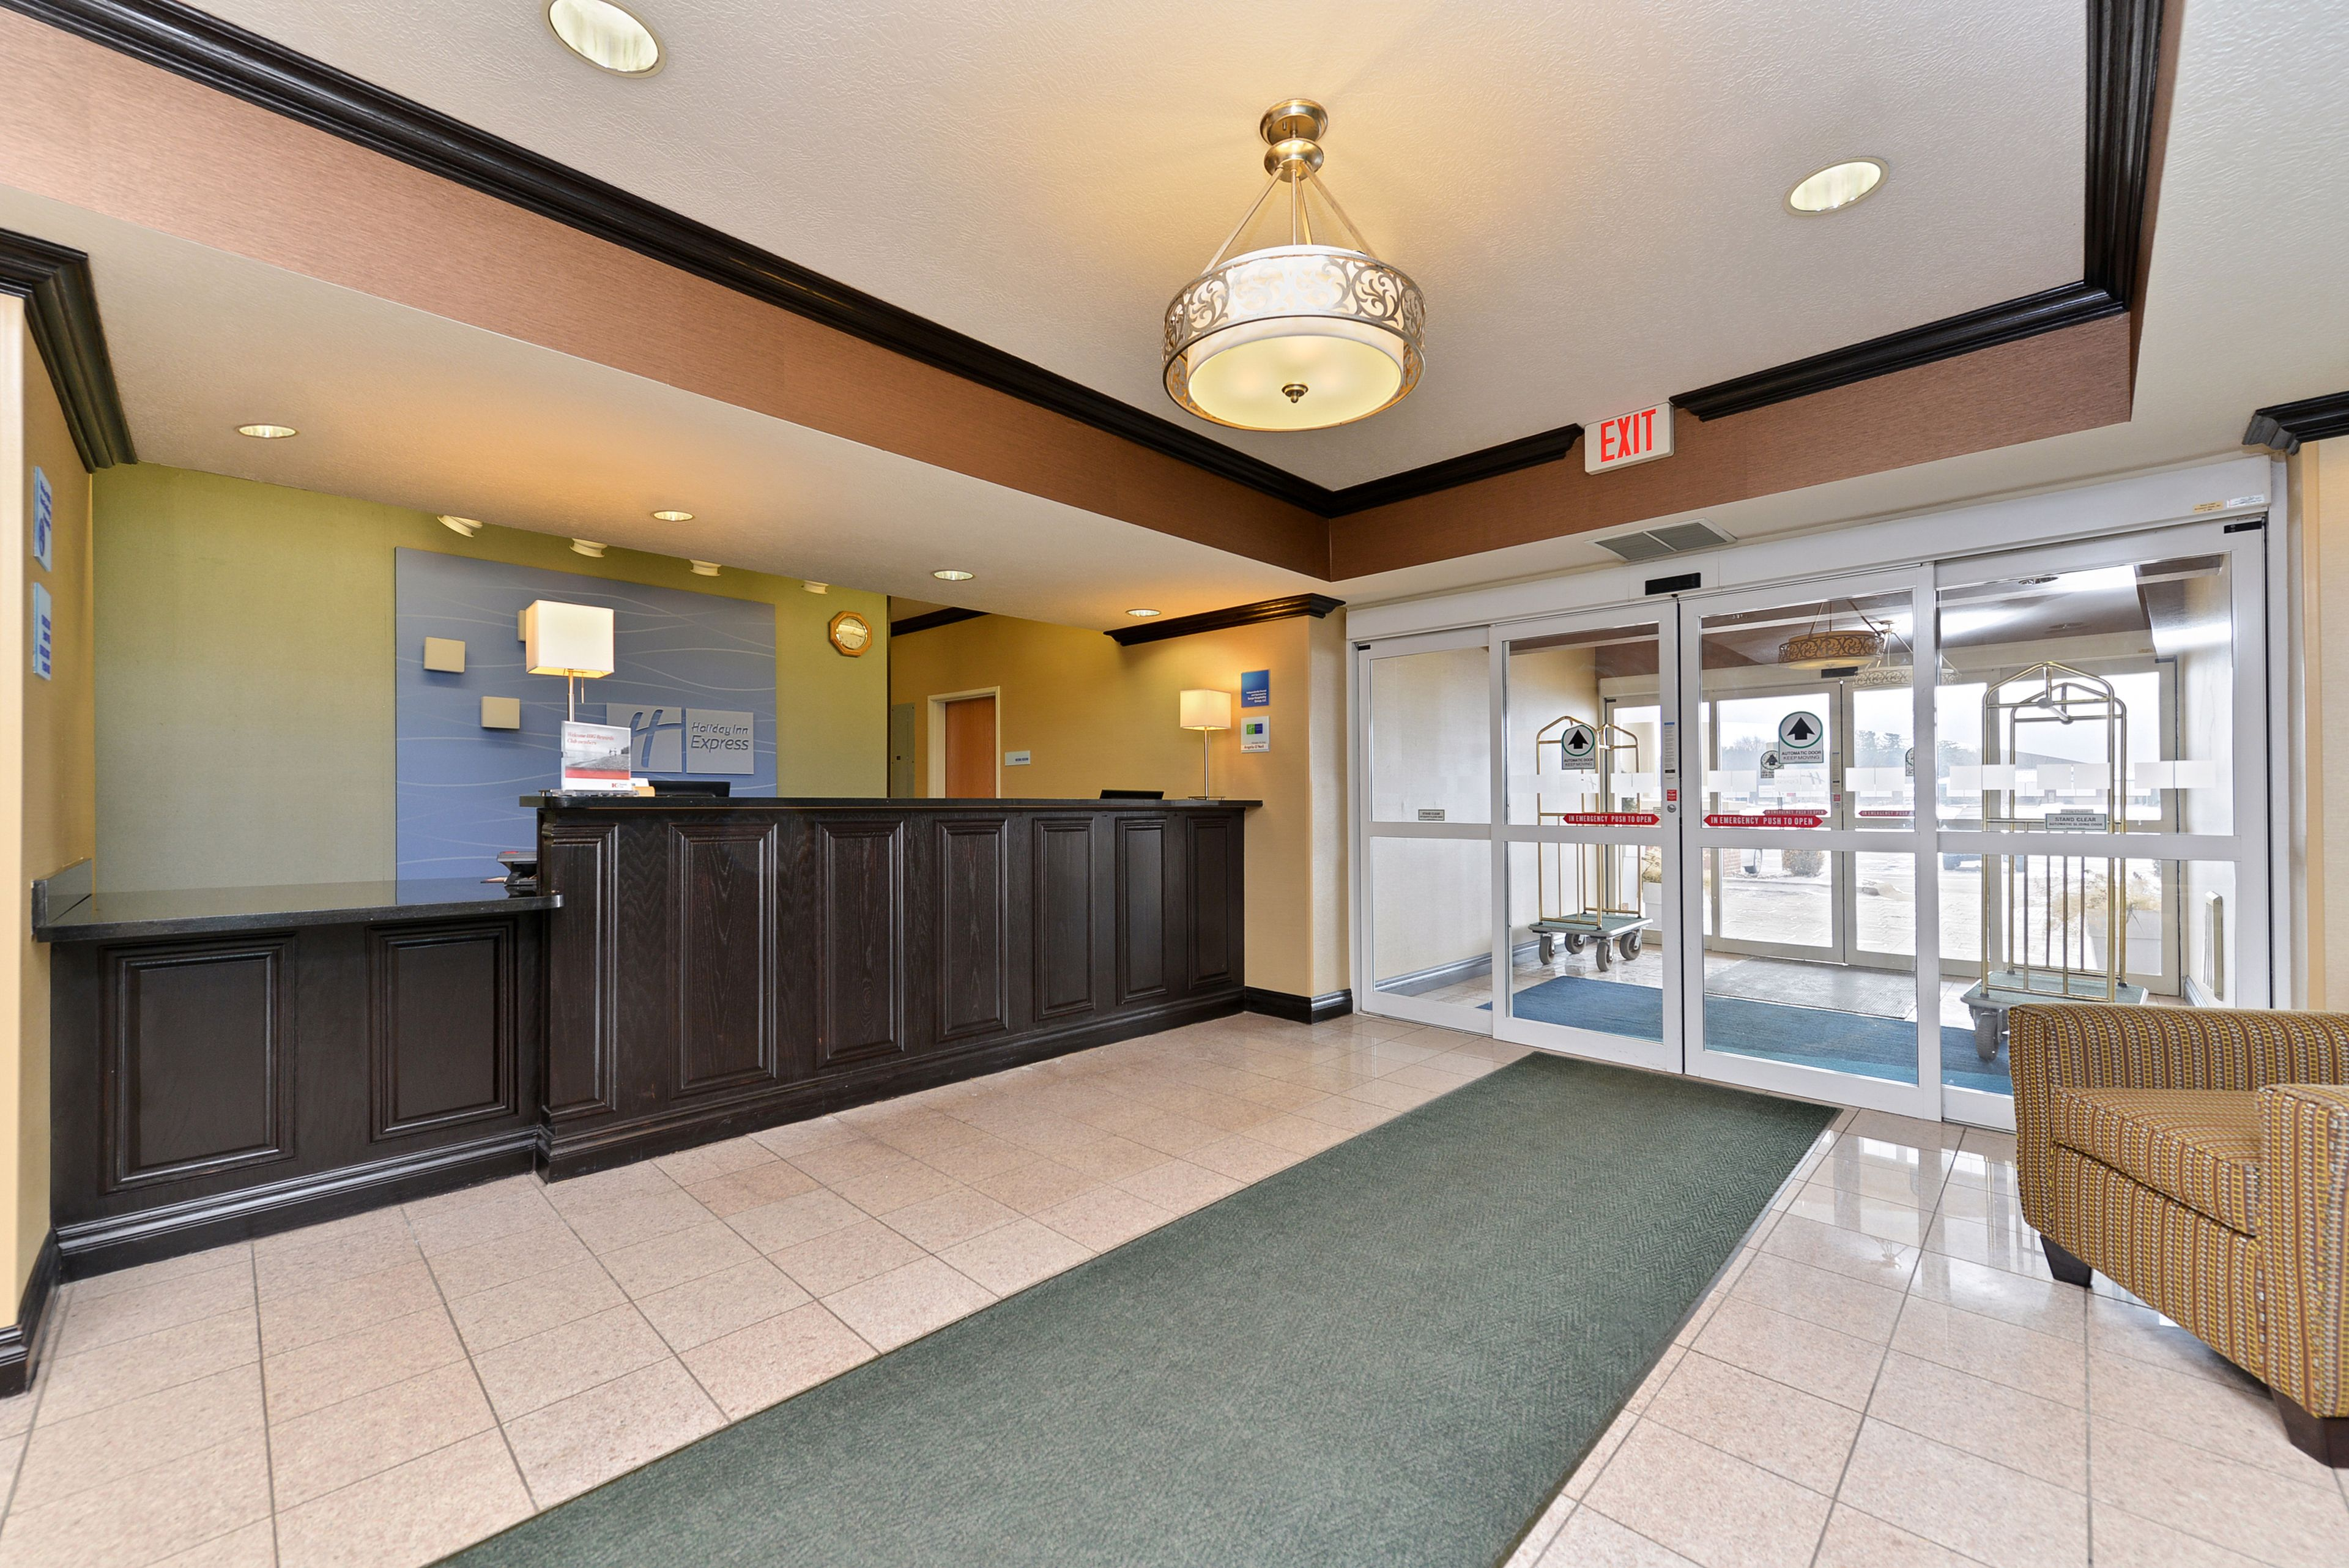 Holiday Inn Express & Suites Charlotte image 4